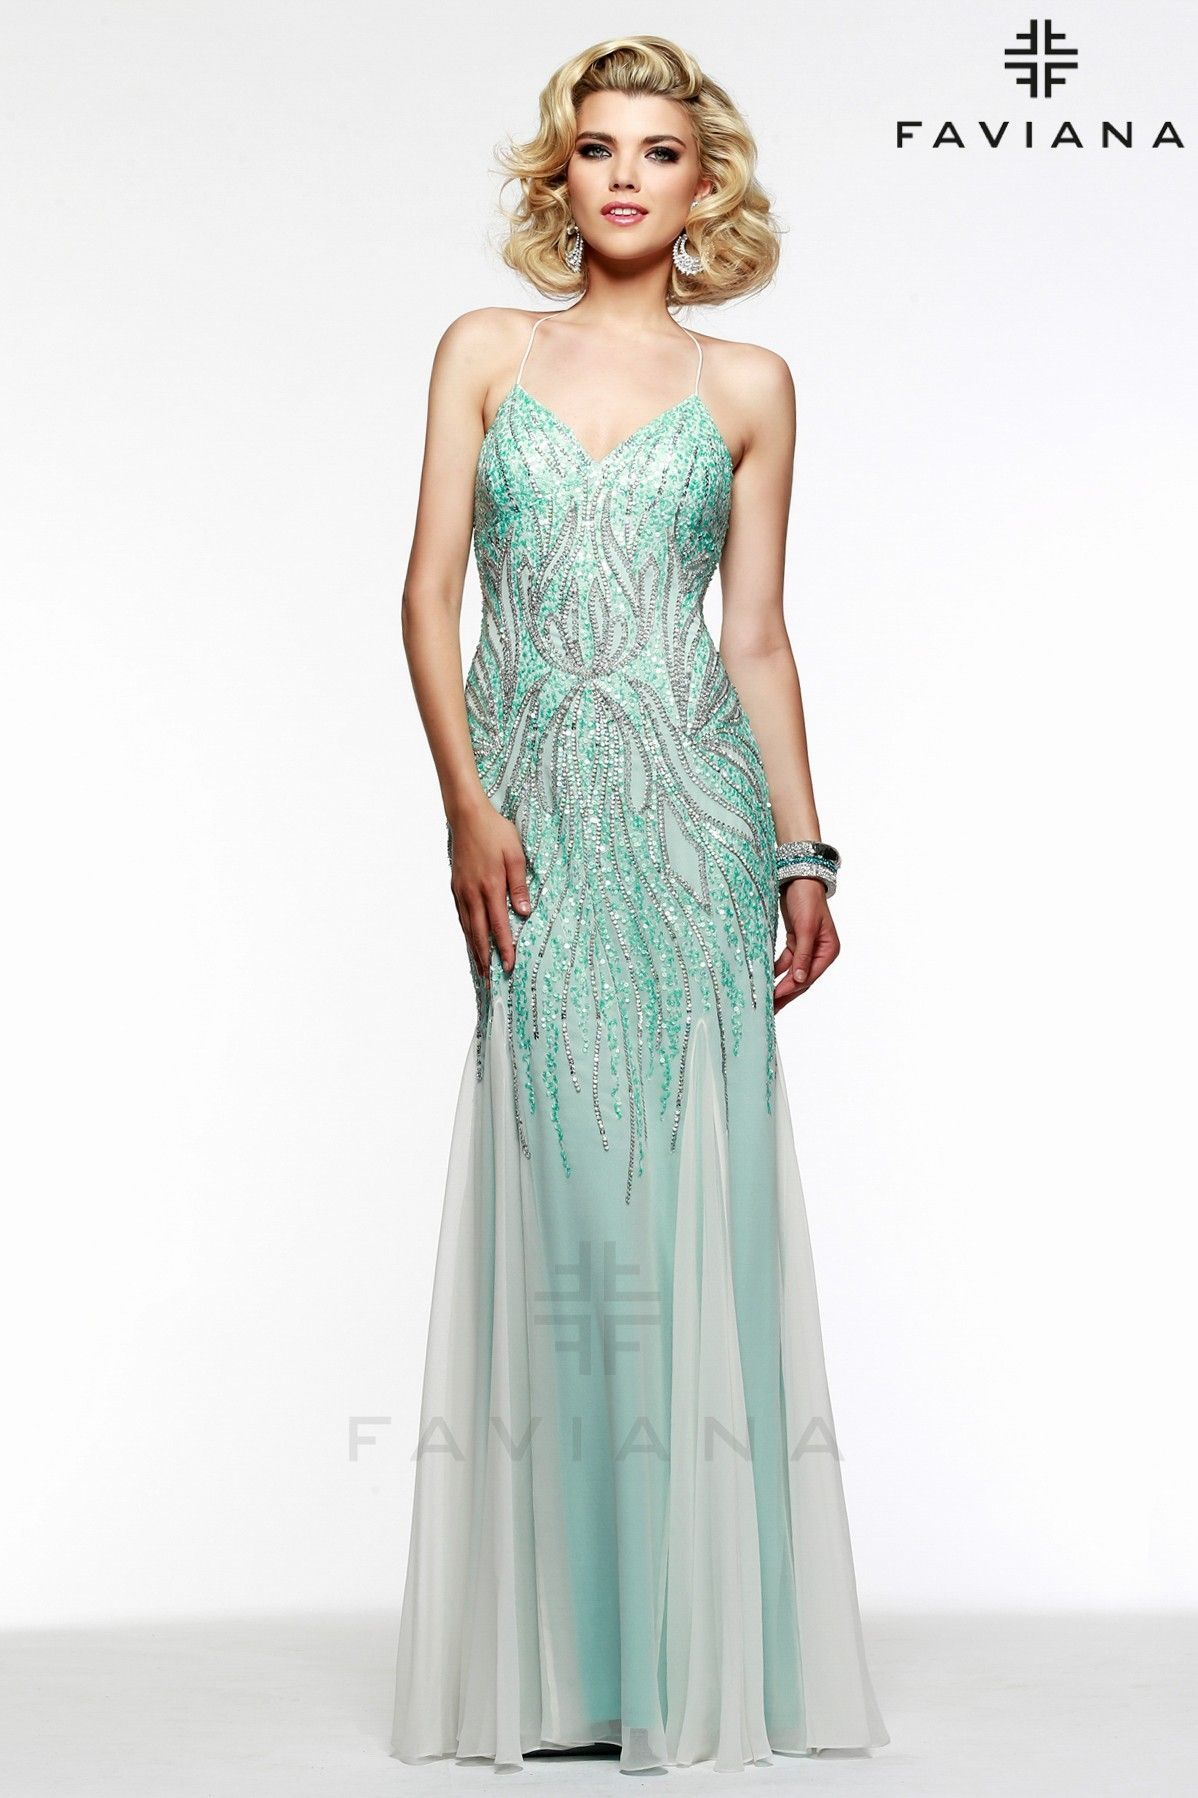 Unique Prom Dress with Beaded Details | Faviana - Prom Dresses ...